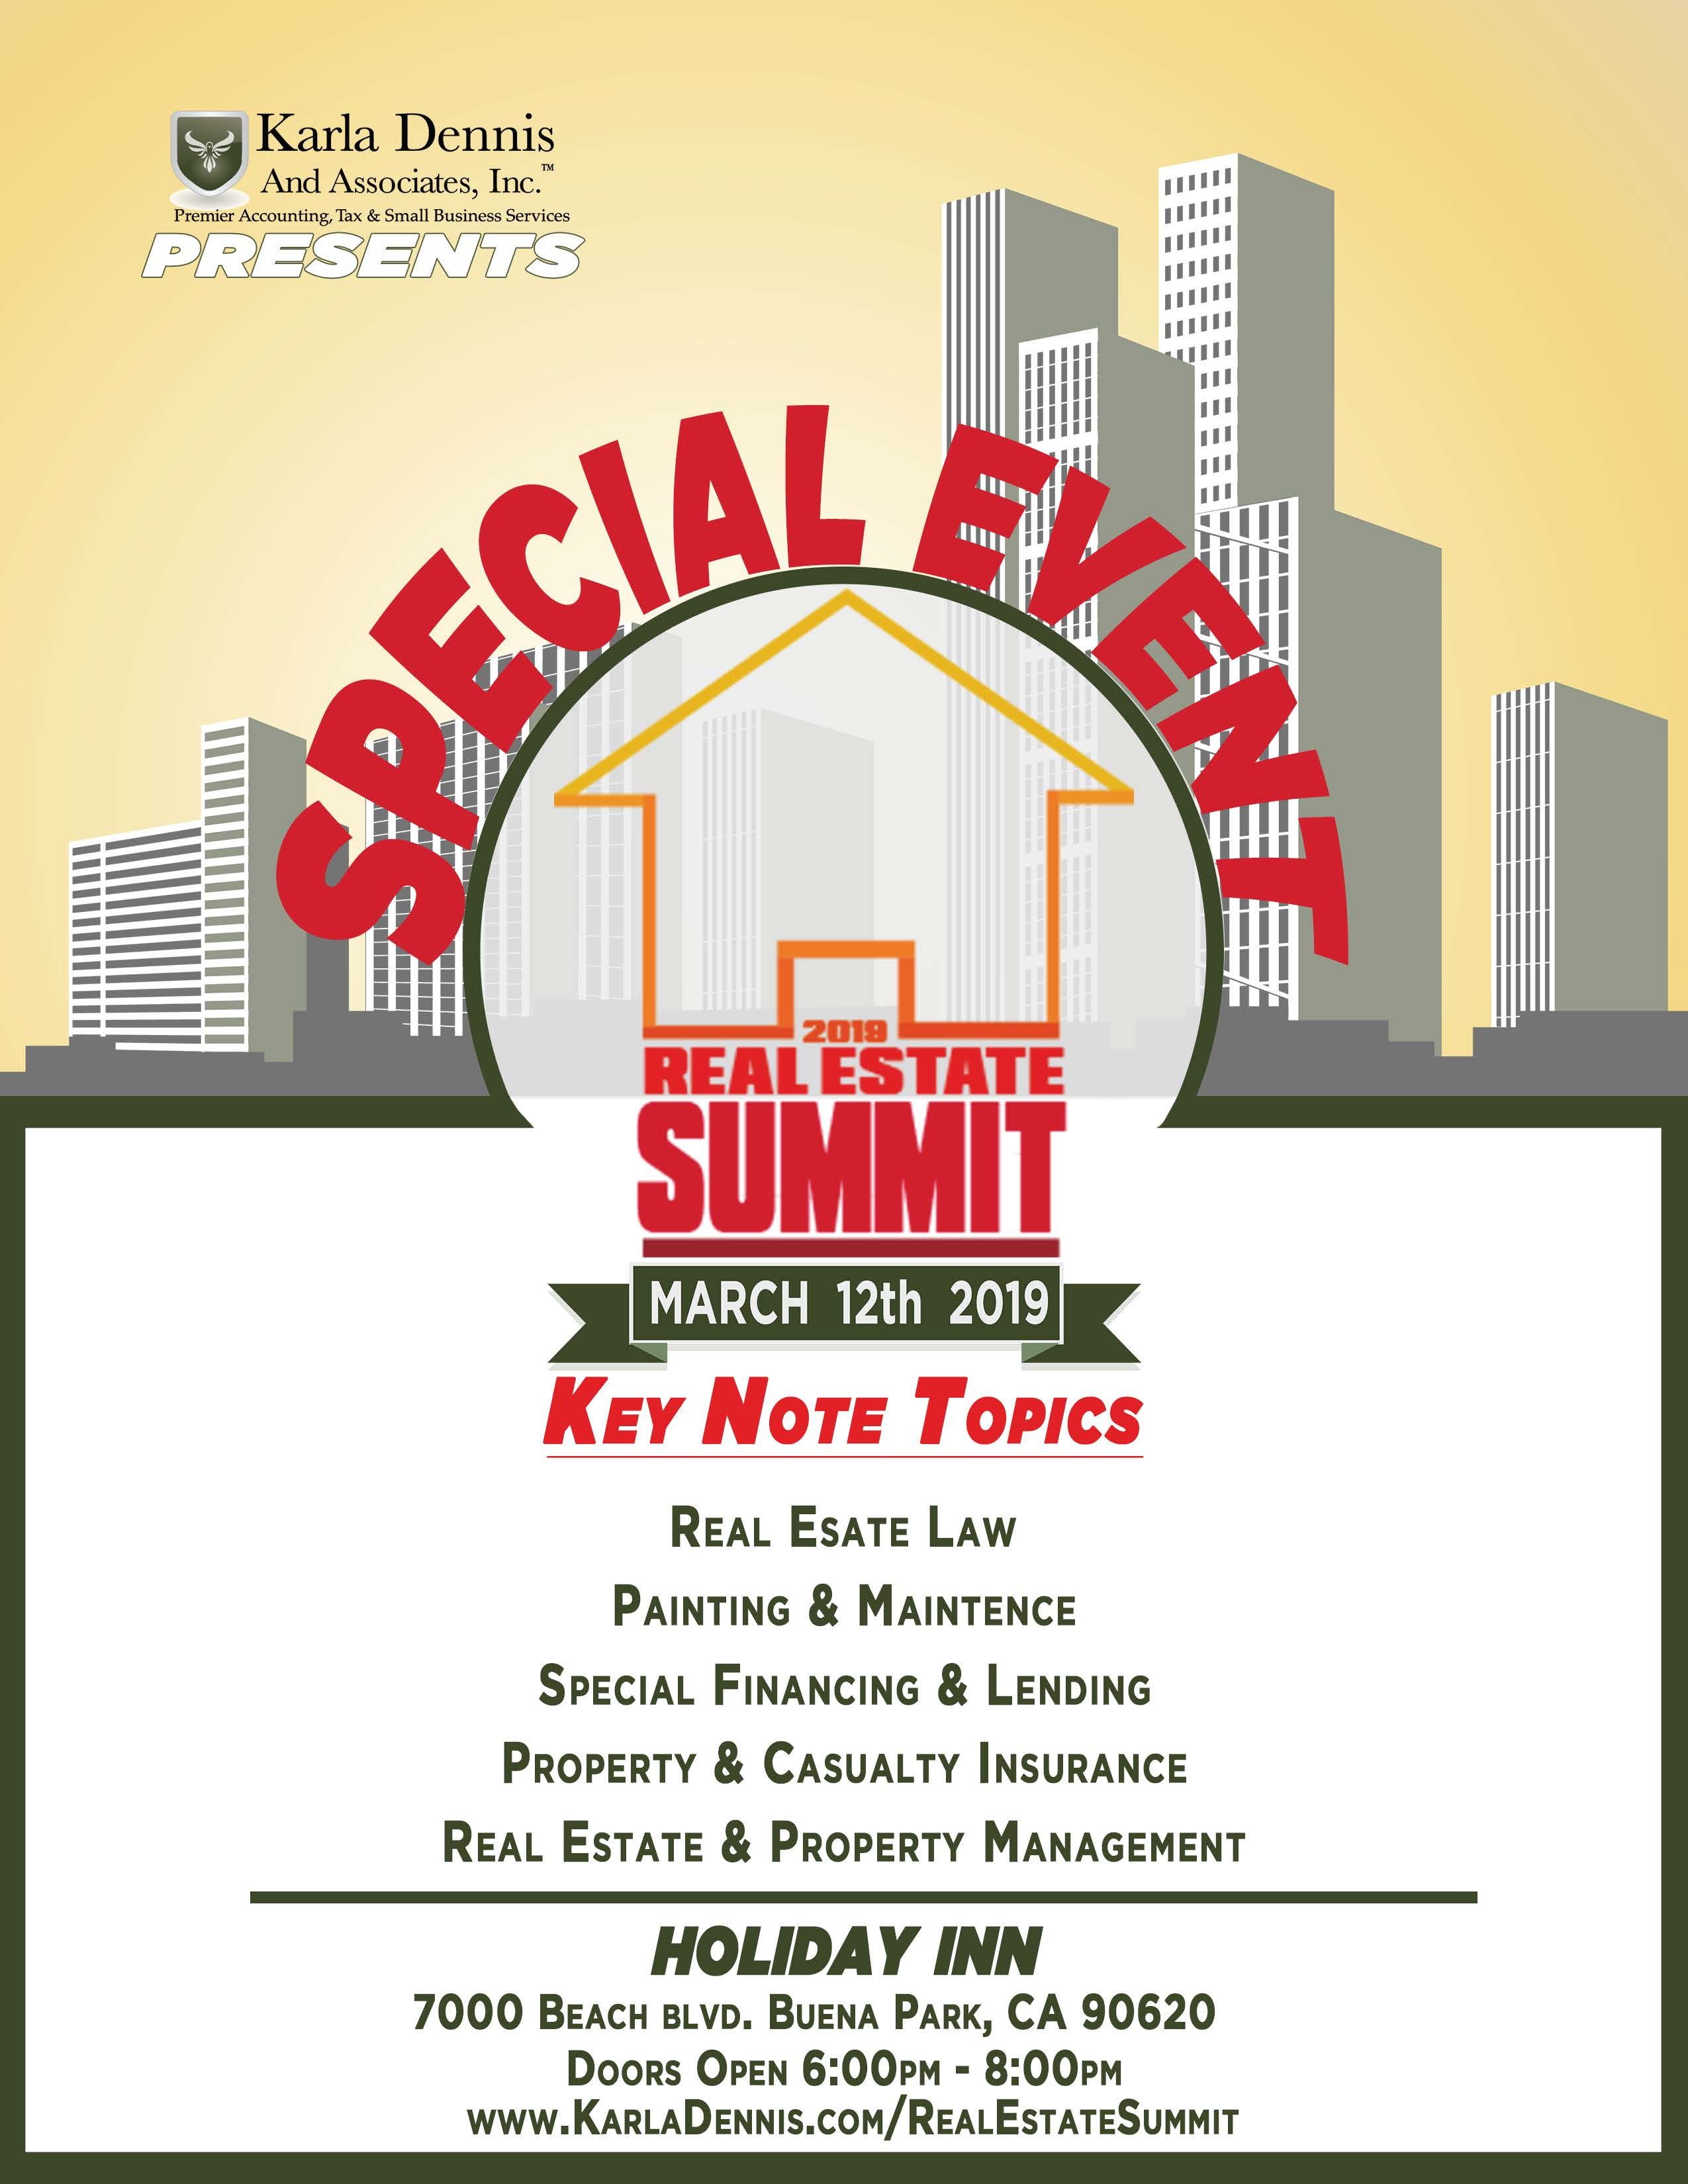 Special Event! 2019 Real Estate Investor's Summit hosted by Karla